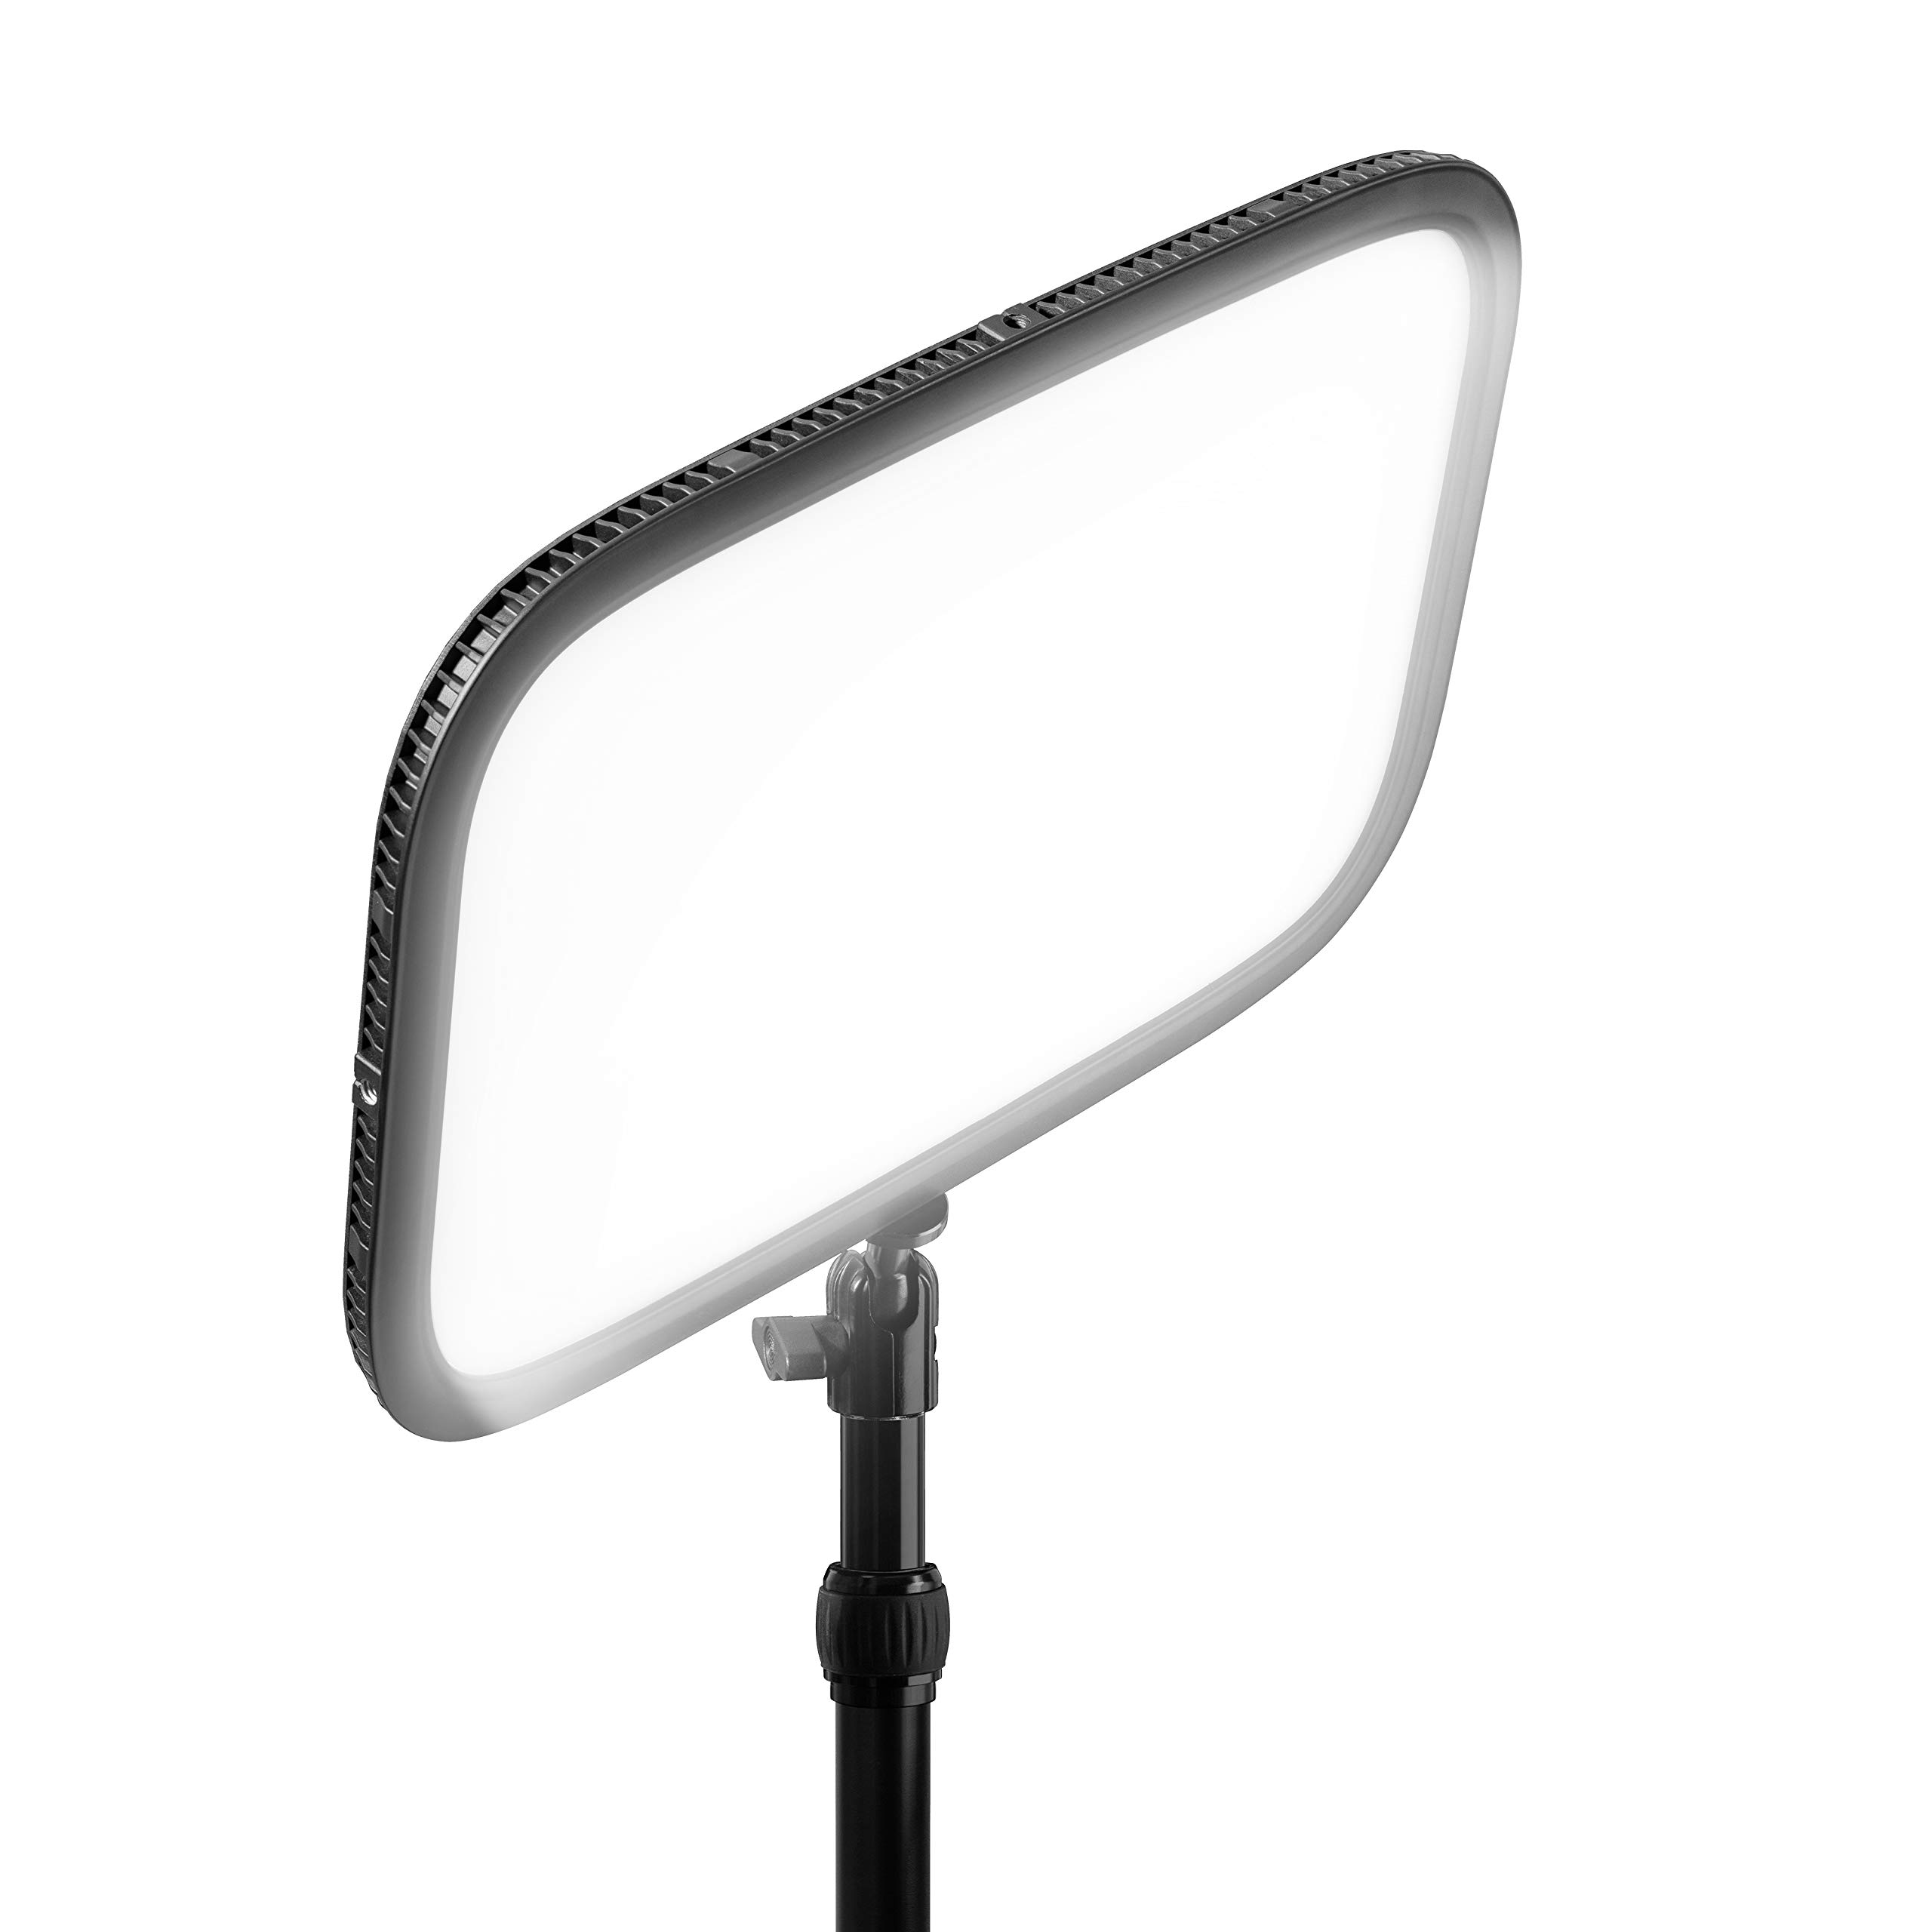 Elgato Key Light - Professional Studio LED Panel with 2500 Lumens, Color Adjustable, App-Enabled - PC and Mac by Corsair